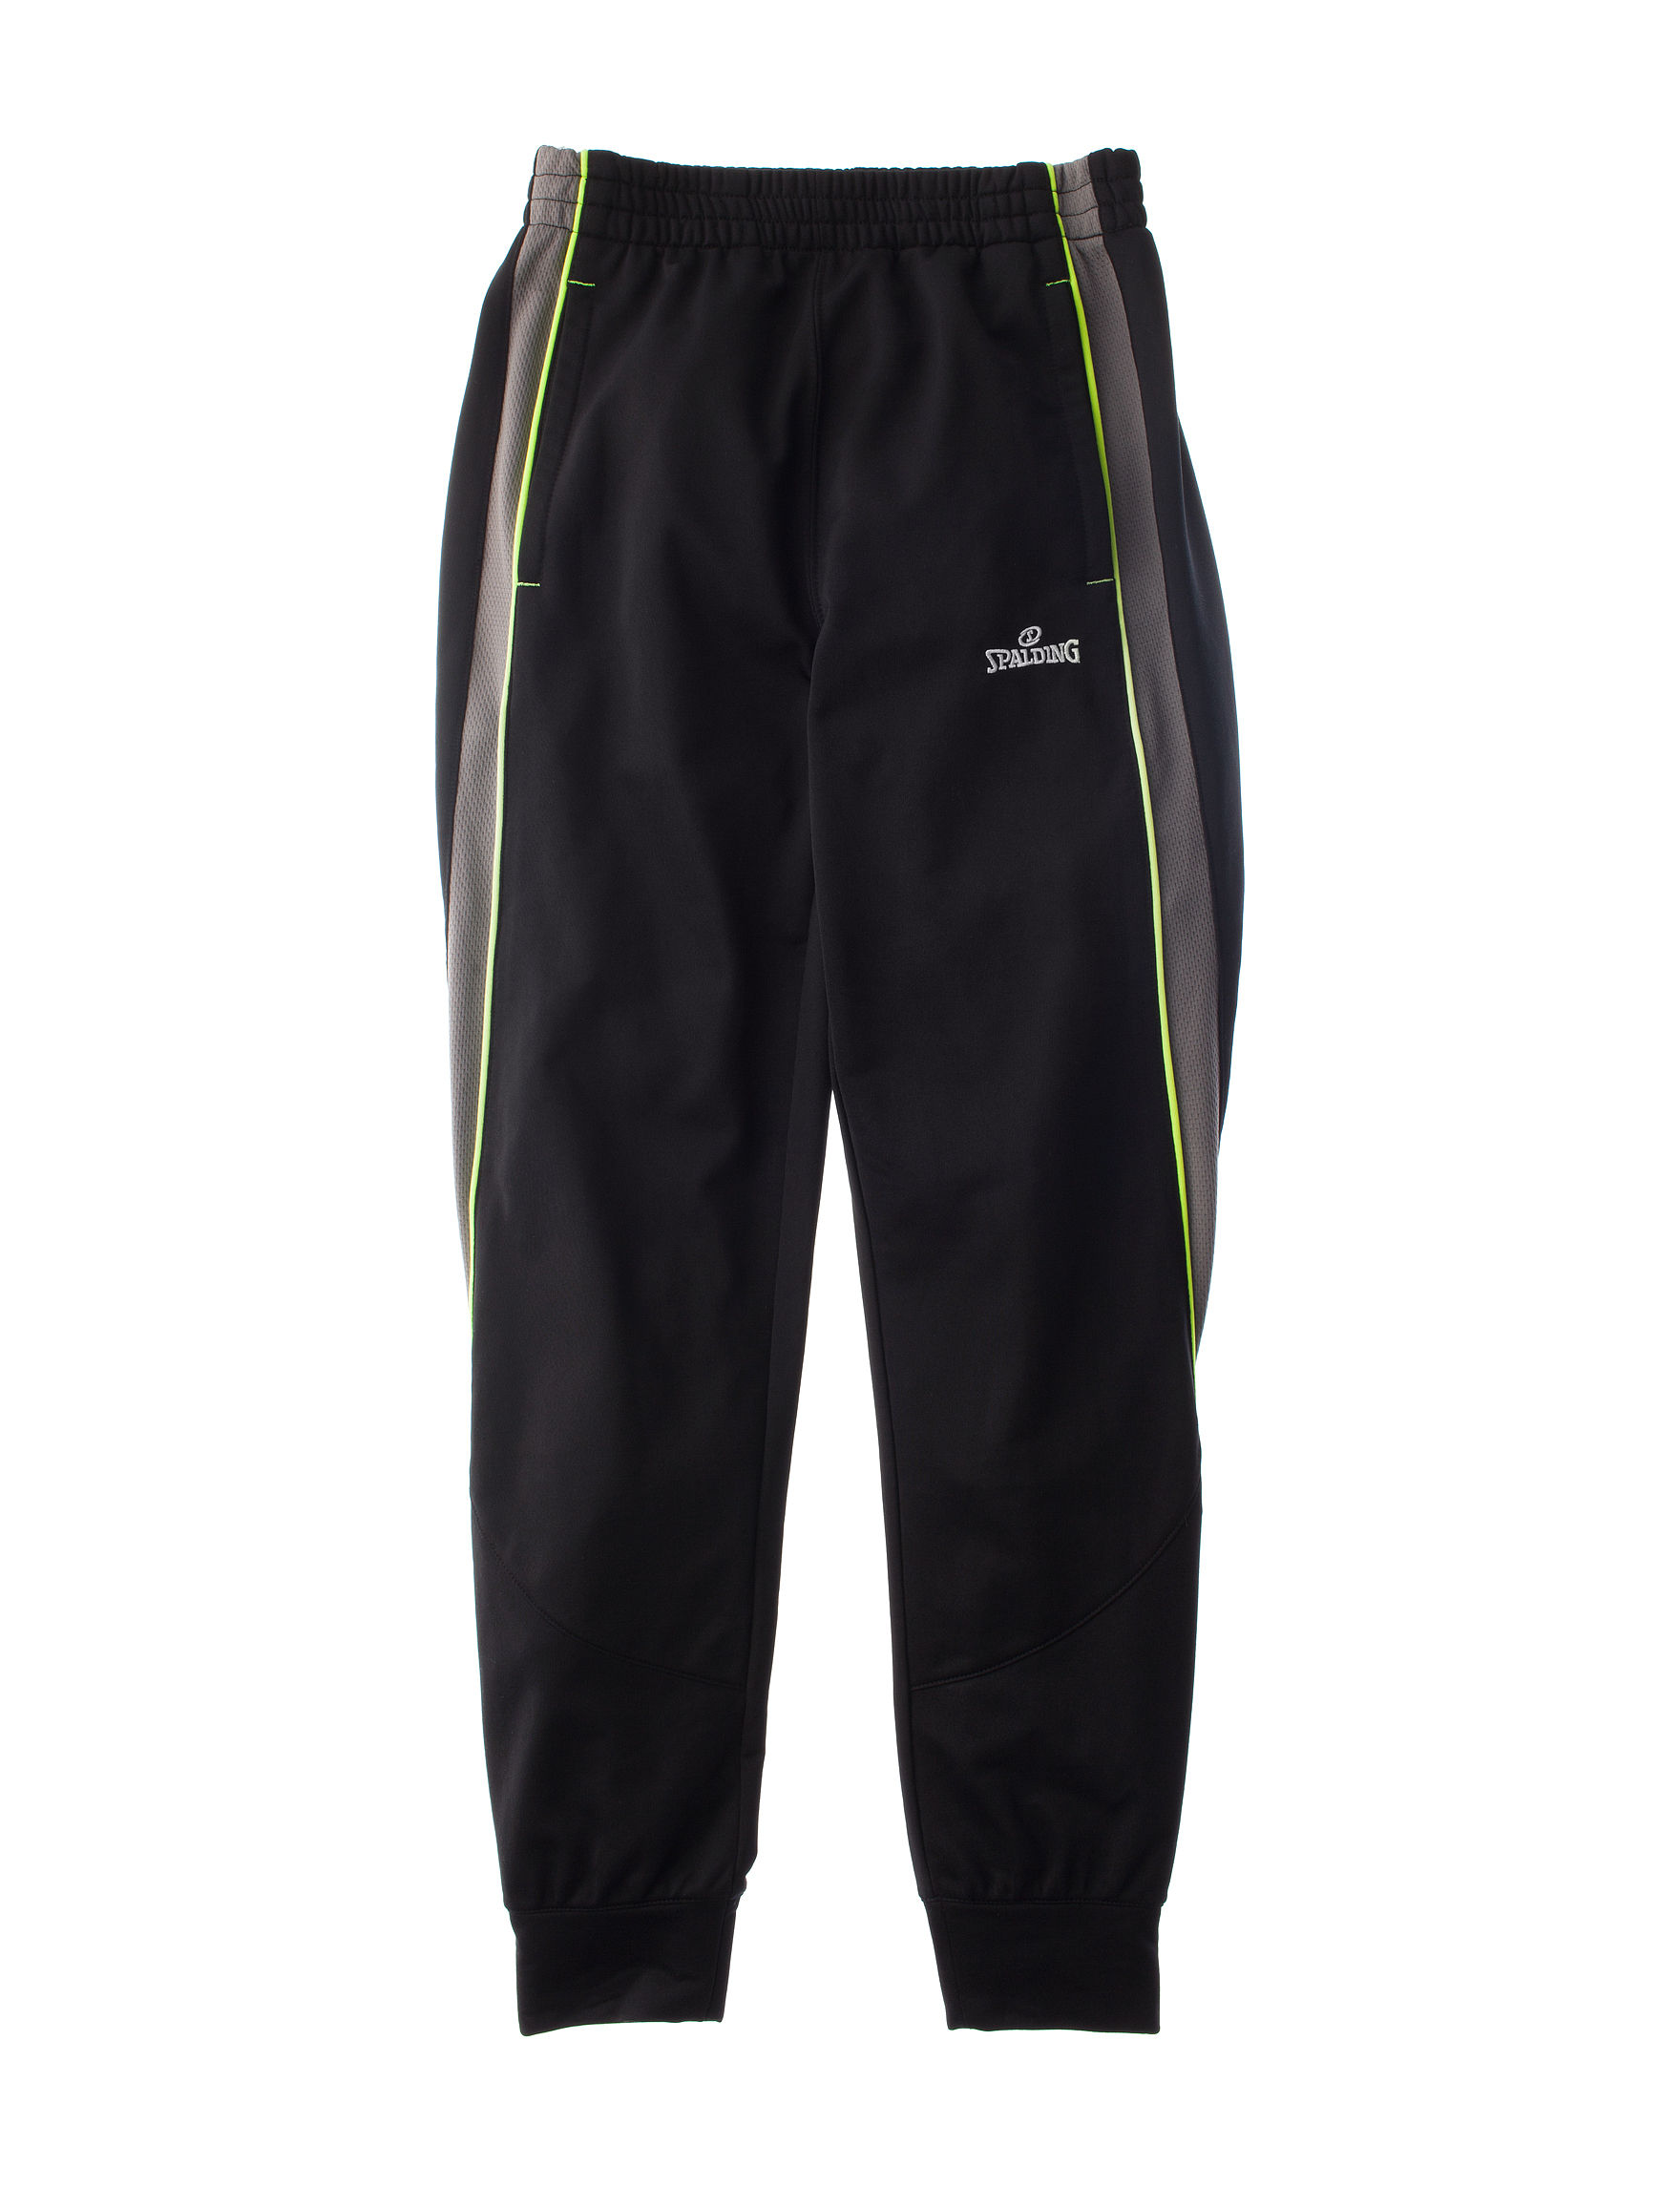 Spalding Black Soft Pants